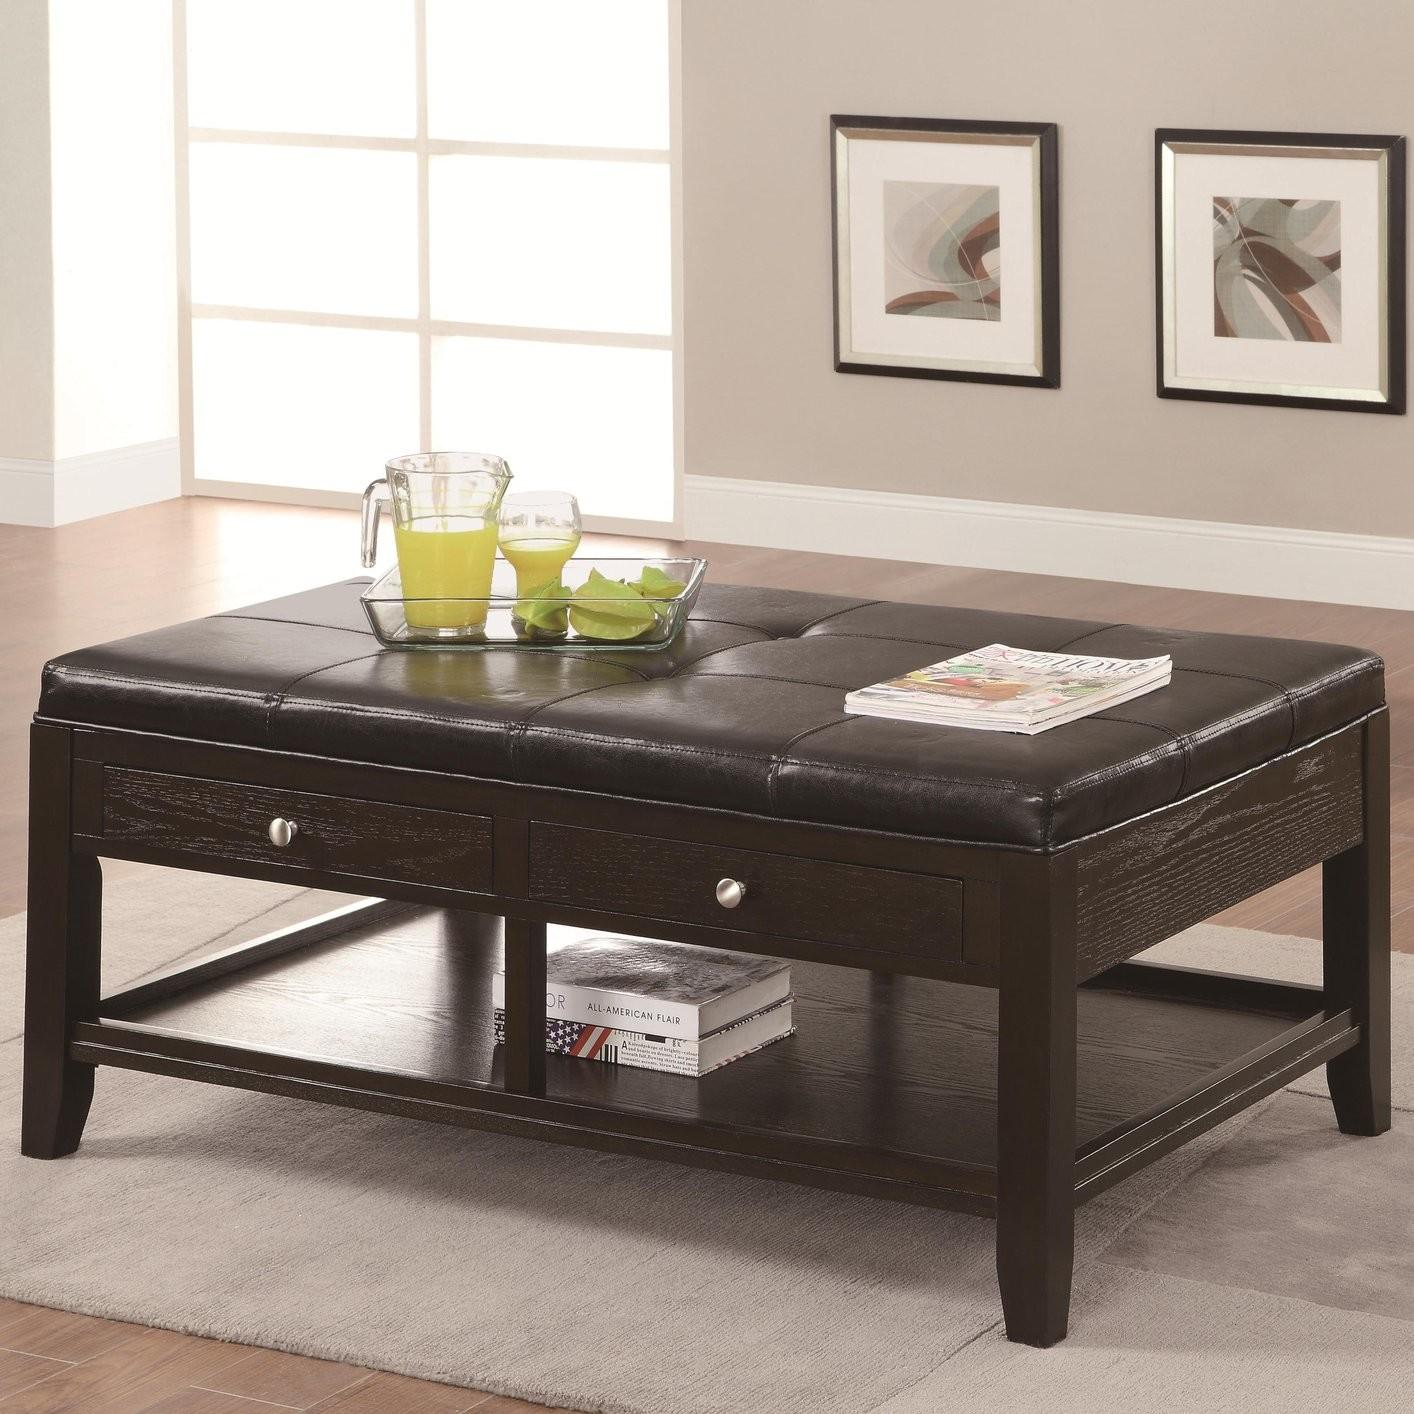 Coffee Table Modern Leather Design